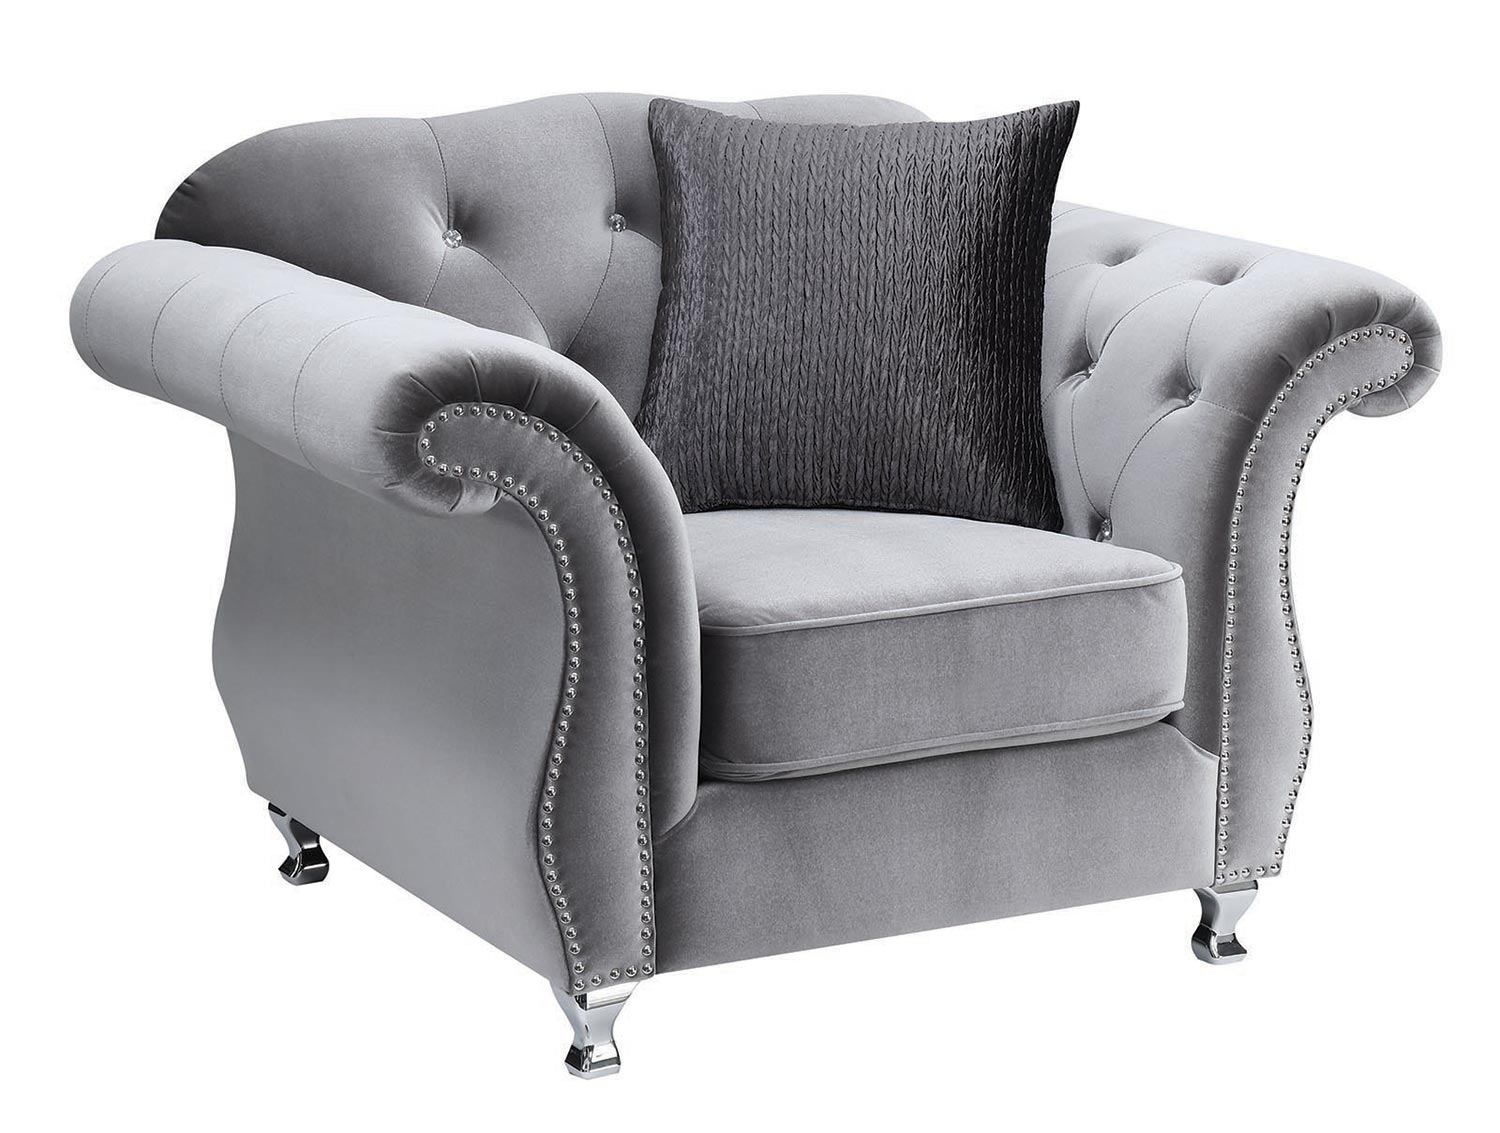 Coaster Frostine Chair - Silver